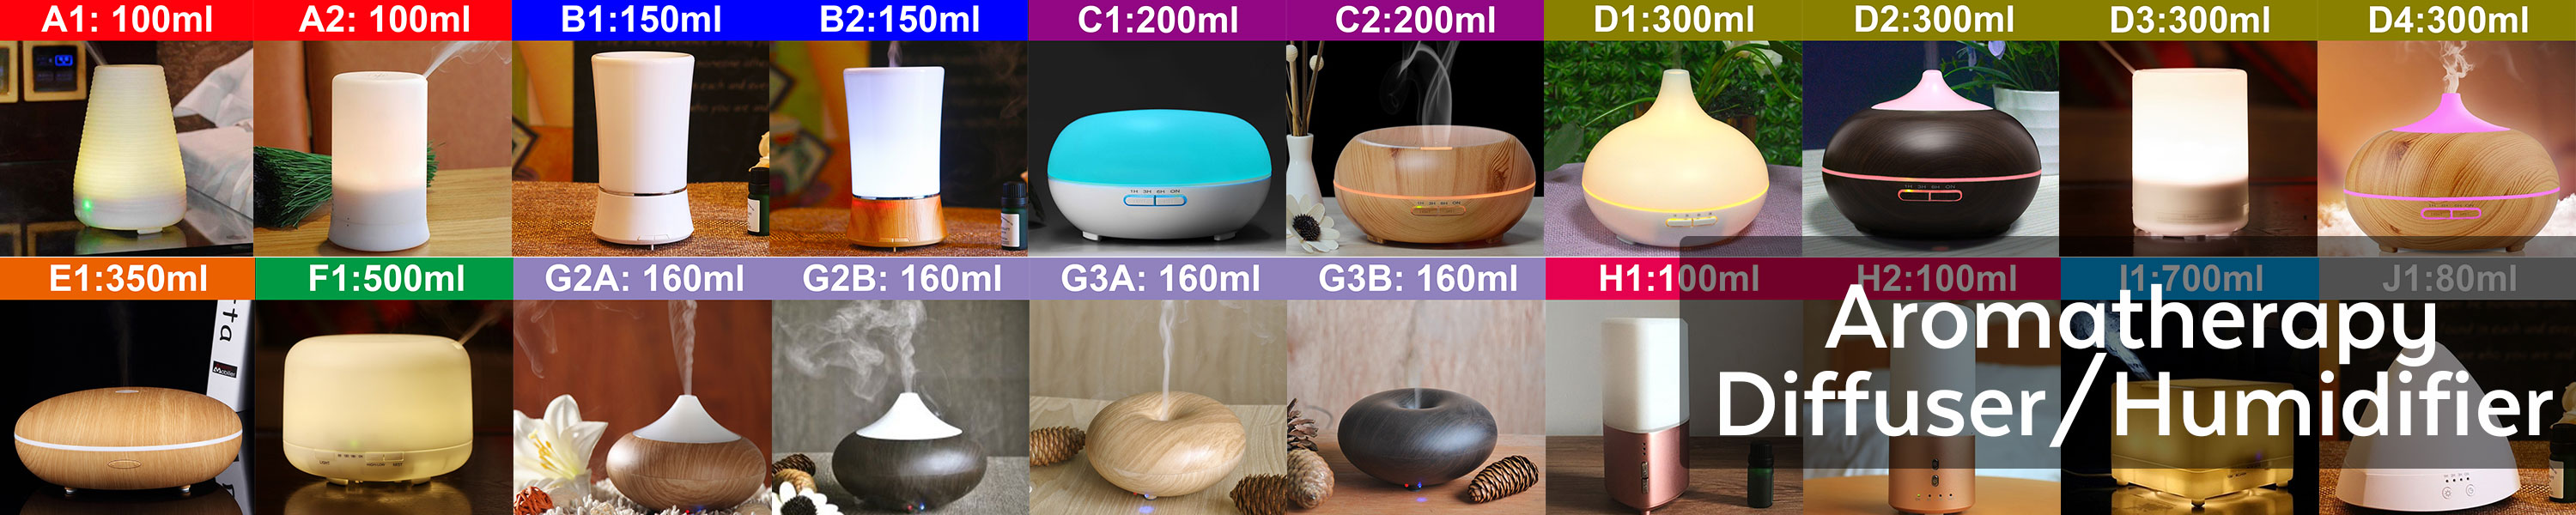 Aromatherapy Diffuser Humidifier Air Purifier Ionizer